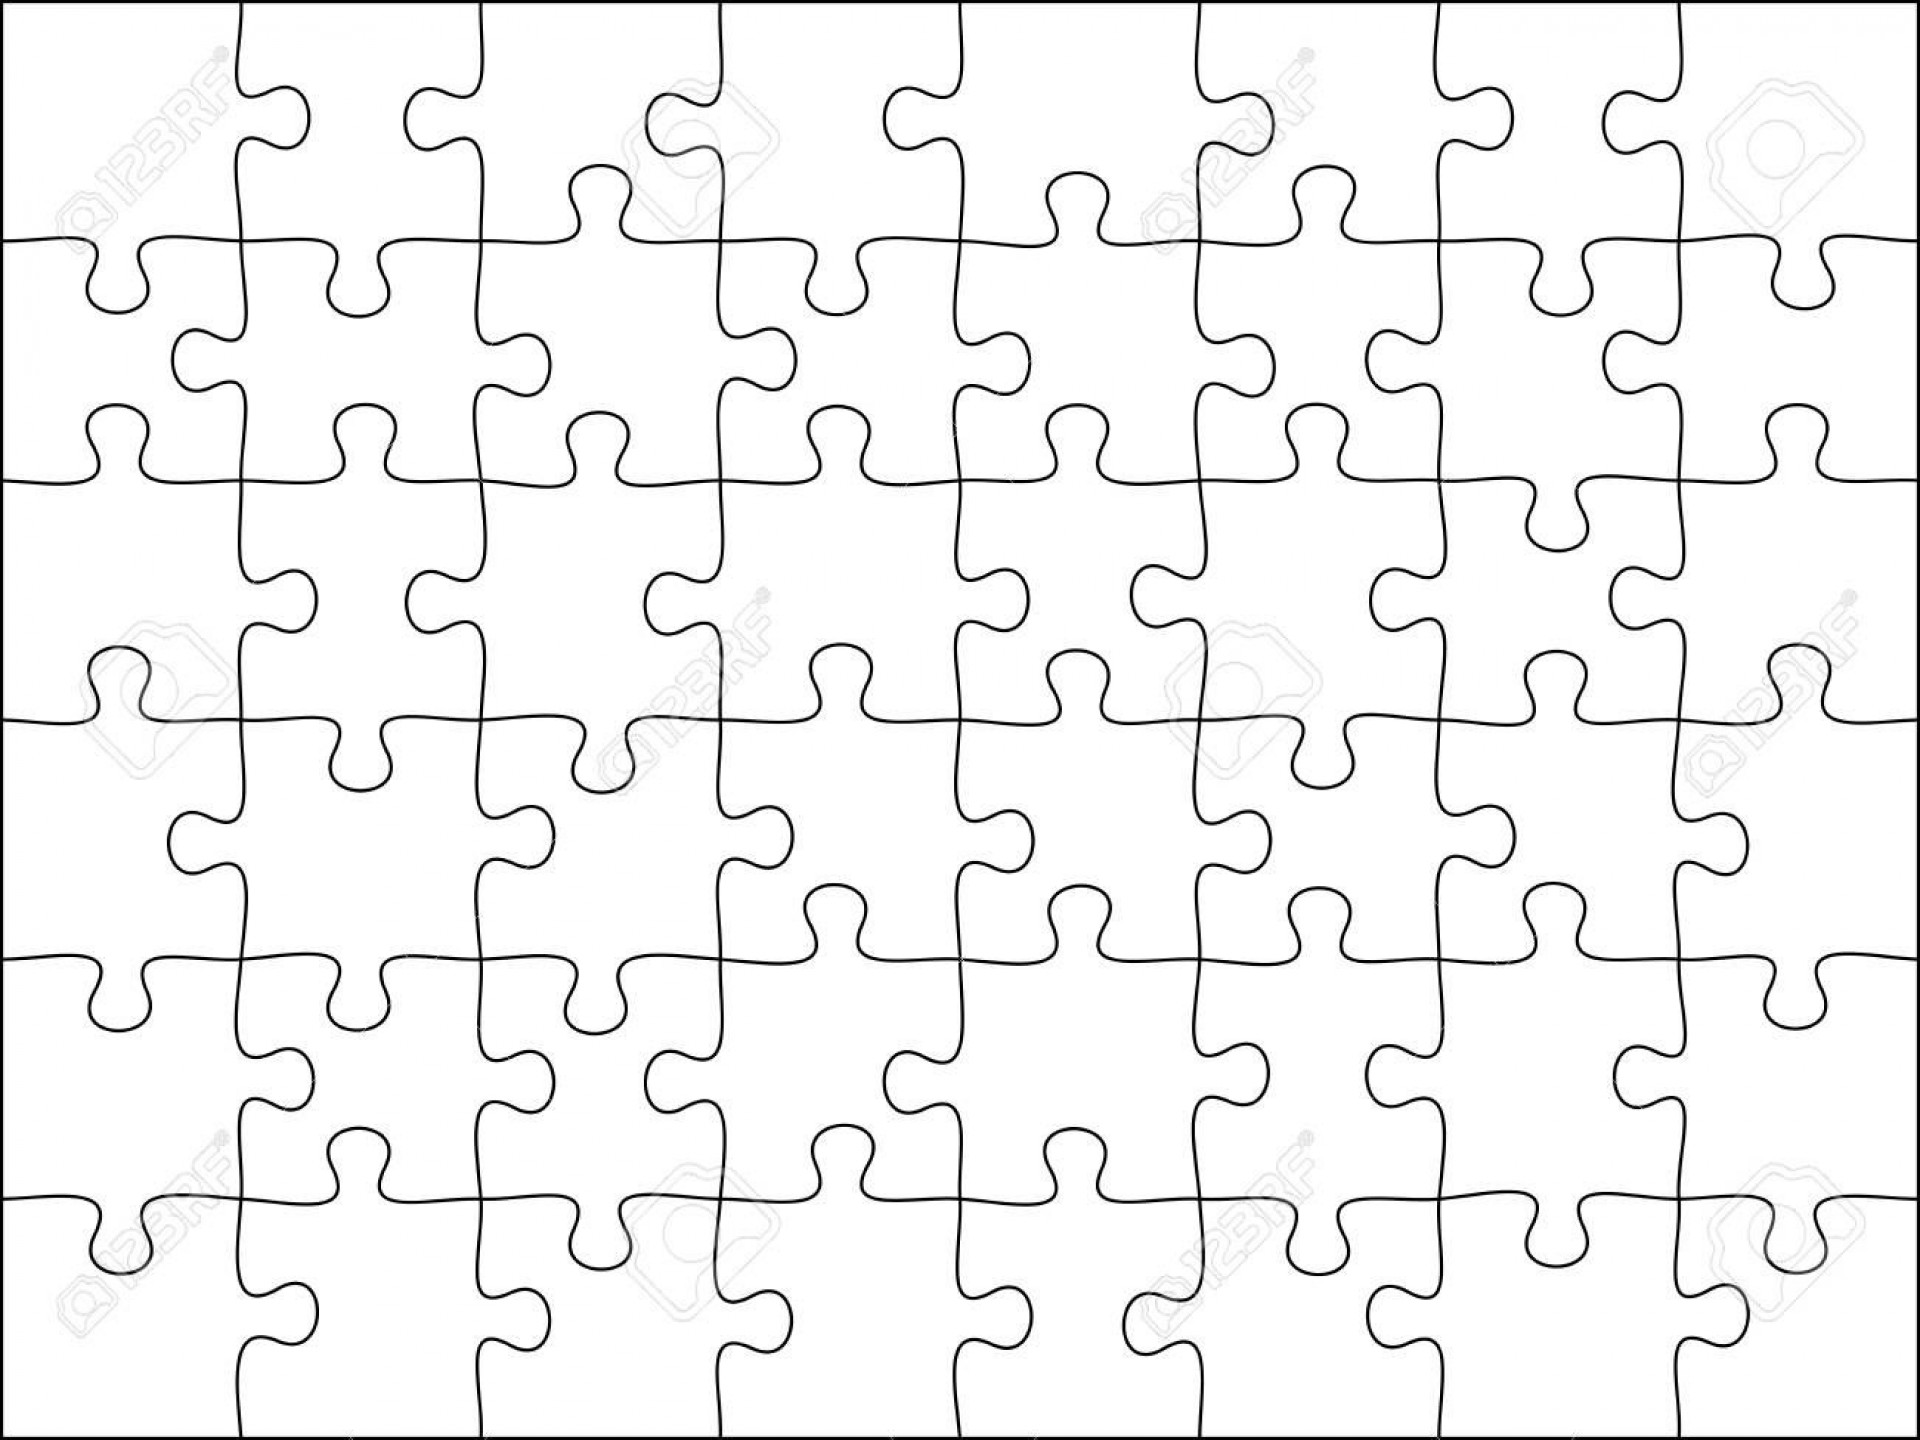 004 Excellent Jig Saw Puzzle Template Photo  Printable Blank Jigsaw Vector Free Png1920